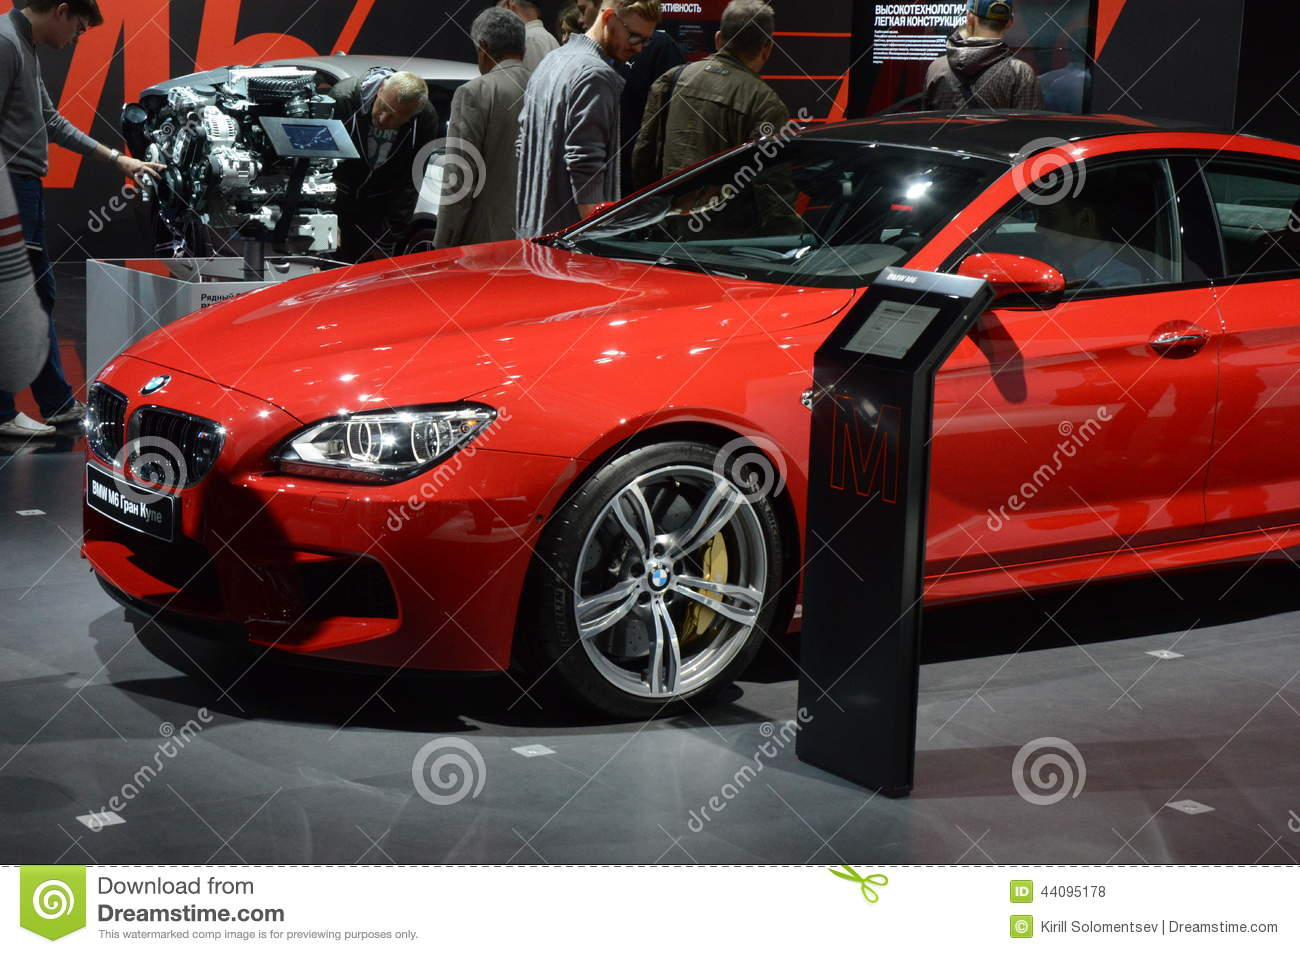 Bmw m6 sixth series moscow international automobile salon for 3rd international salon of photography smederevo 2013